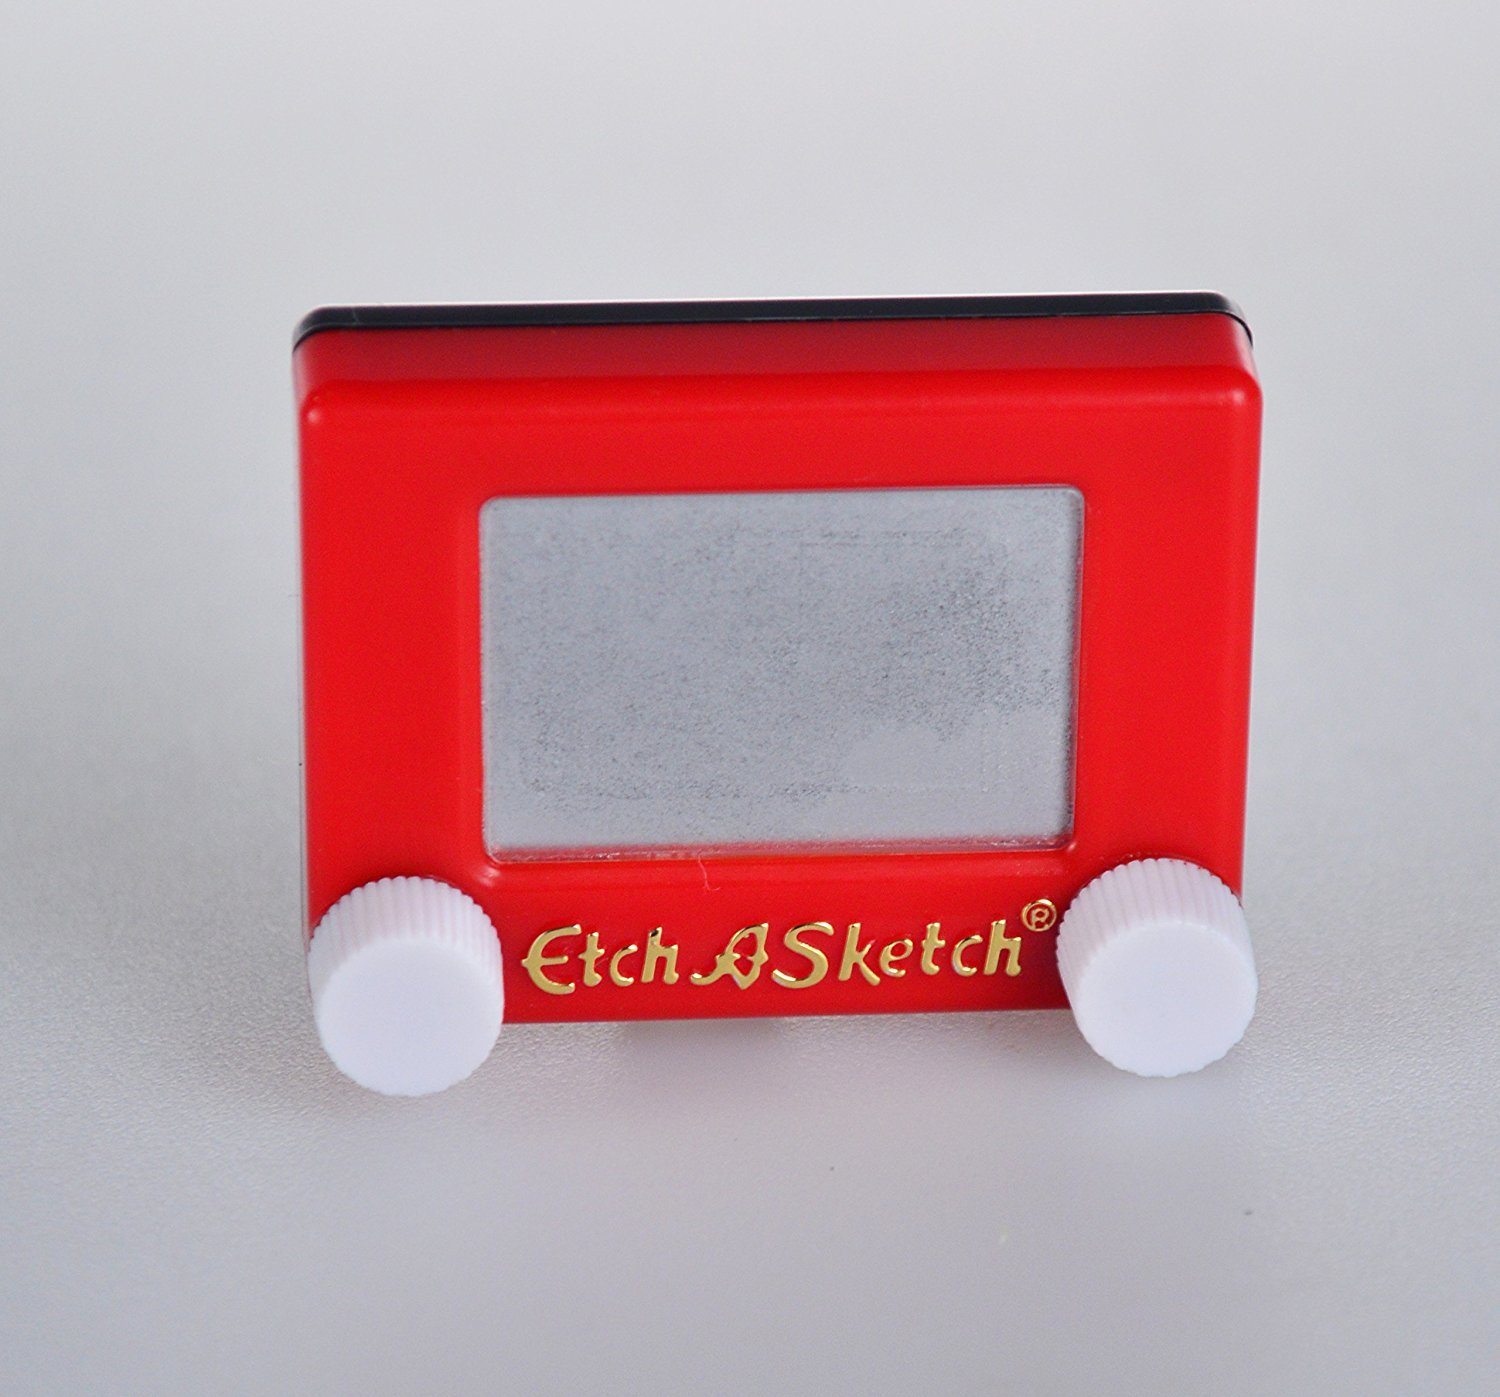 Worlds Smallest - Etch A Sketch image